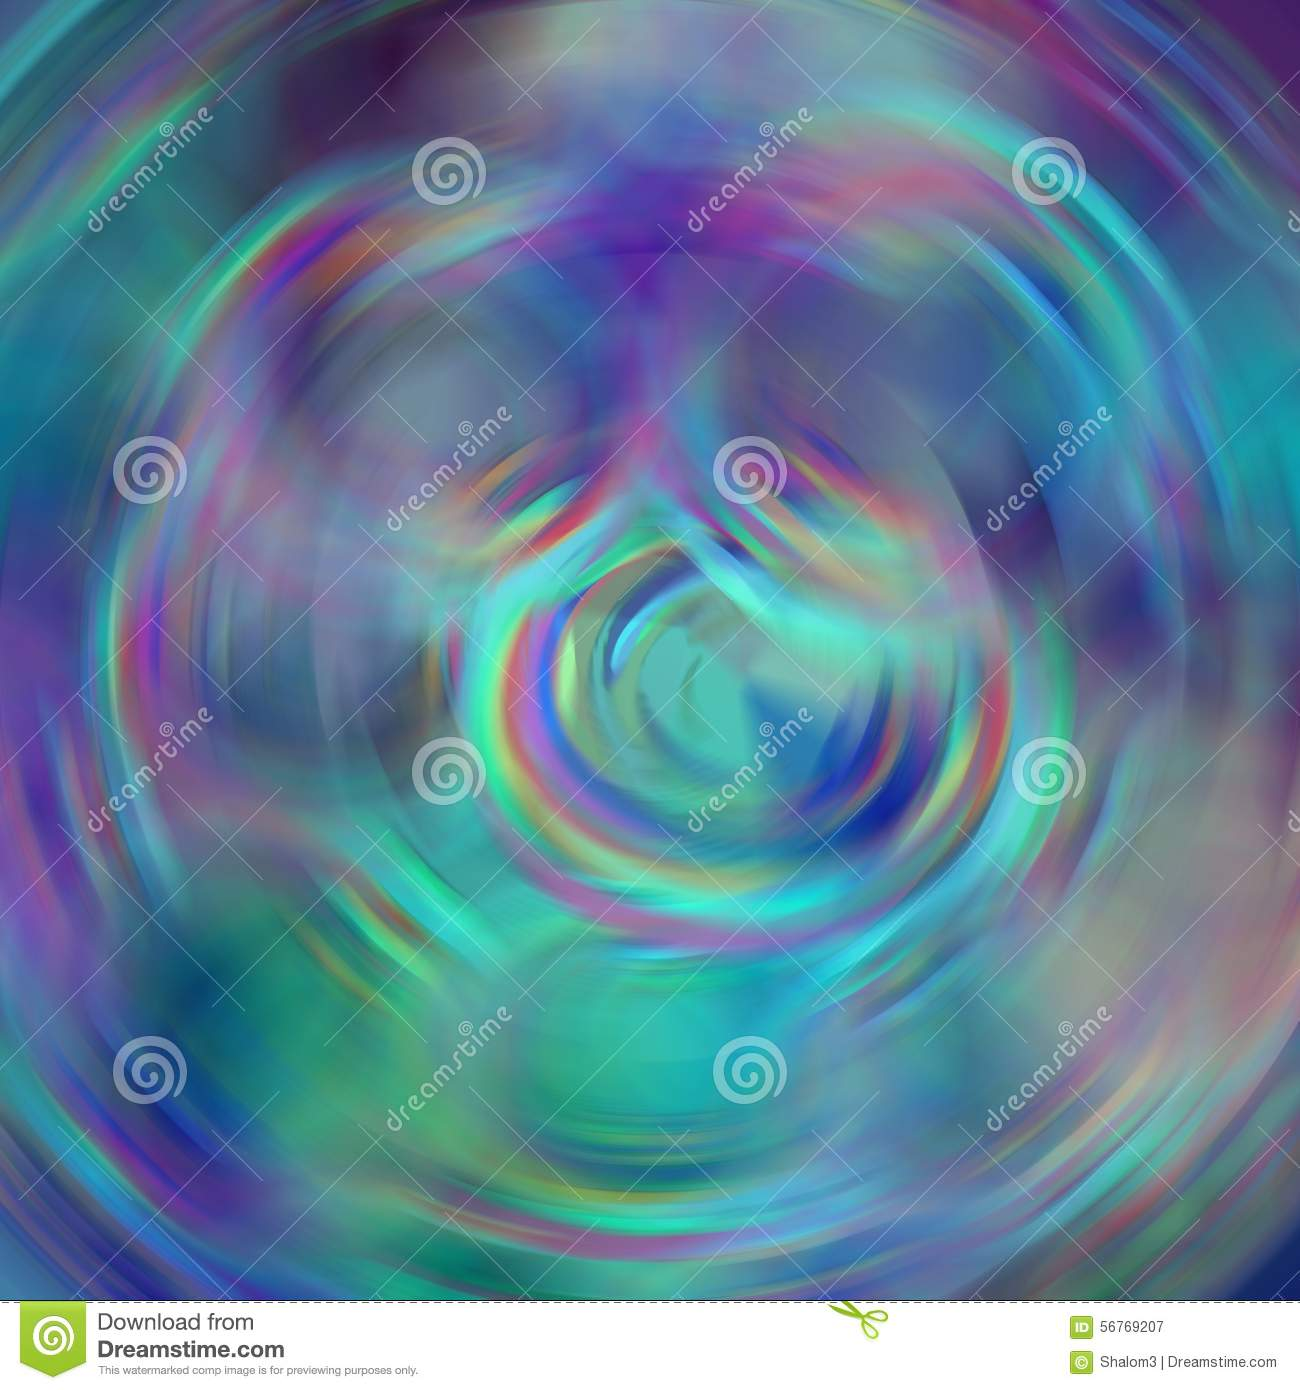 abstract background blur circle - photo #17